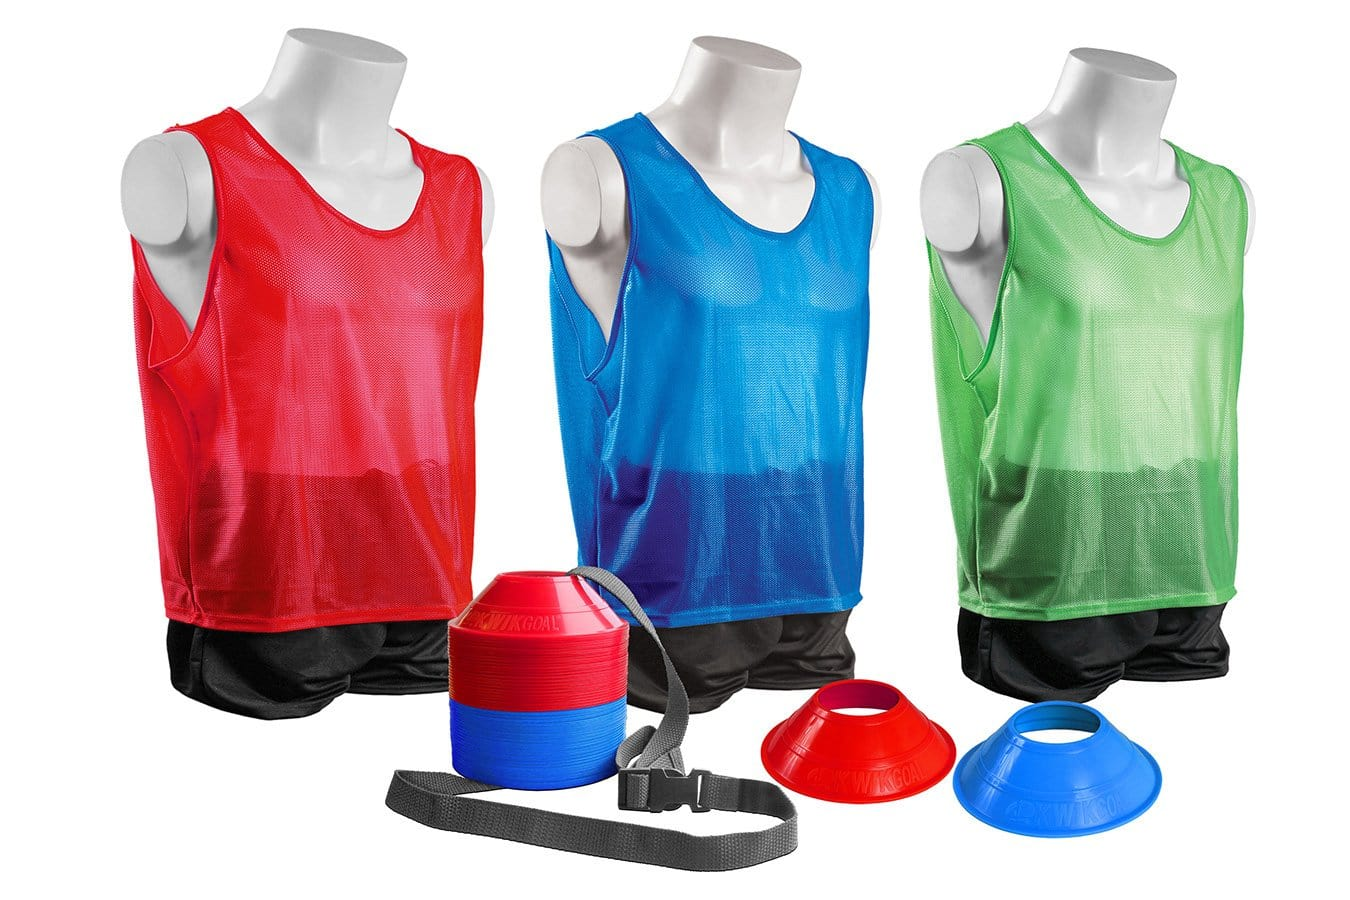 Sample of 1 Red, Blue & Green Vest and Red & Blue Disc Cones